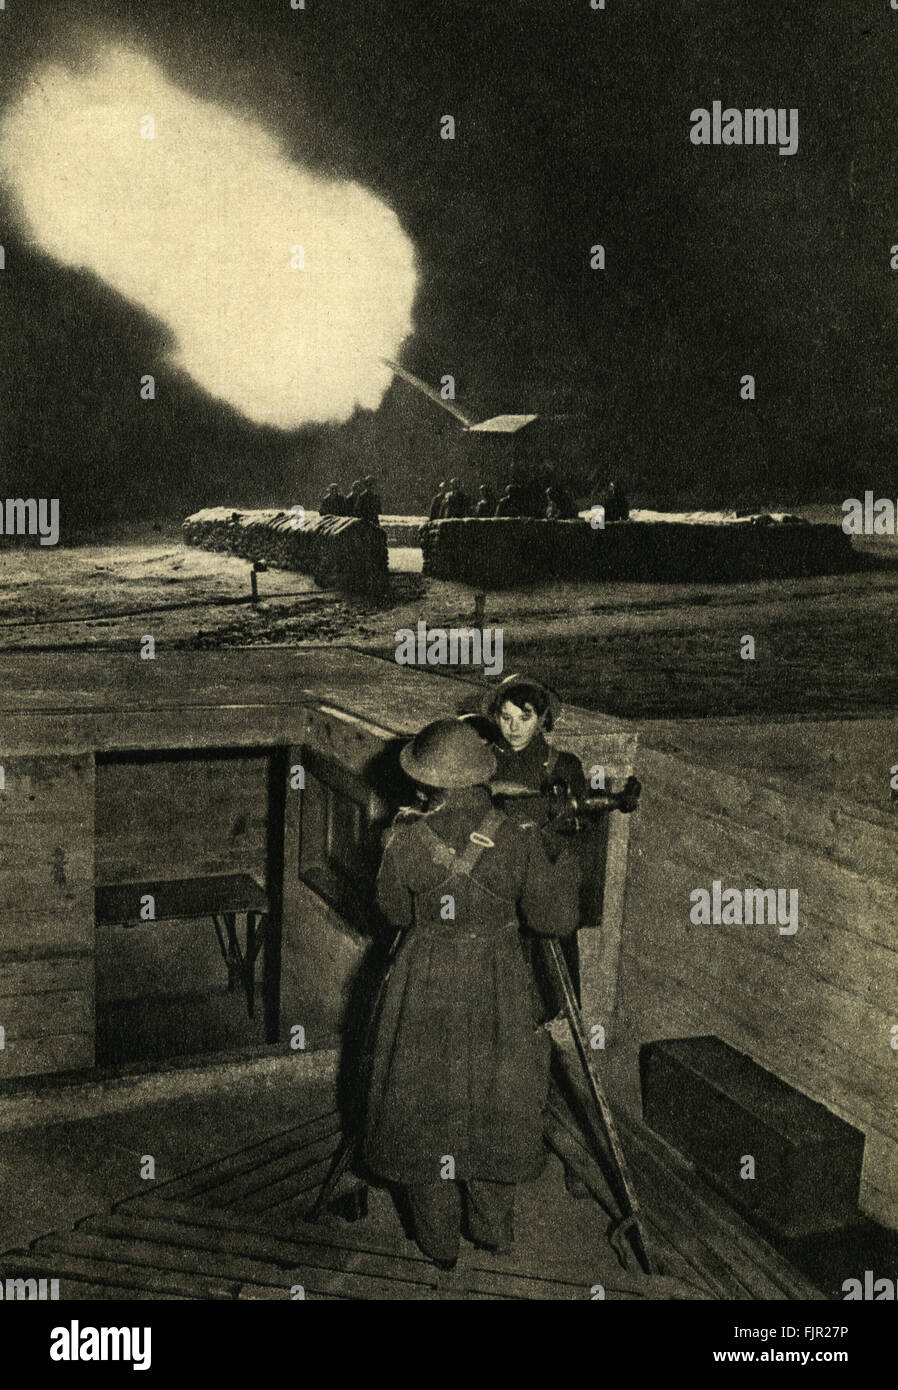 Anti-aircraft women of the Auxilliary Territorial Service / ATS operating an identification telescope. - Stock Image